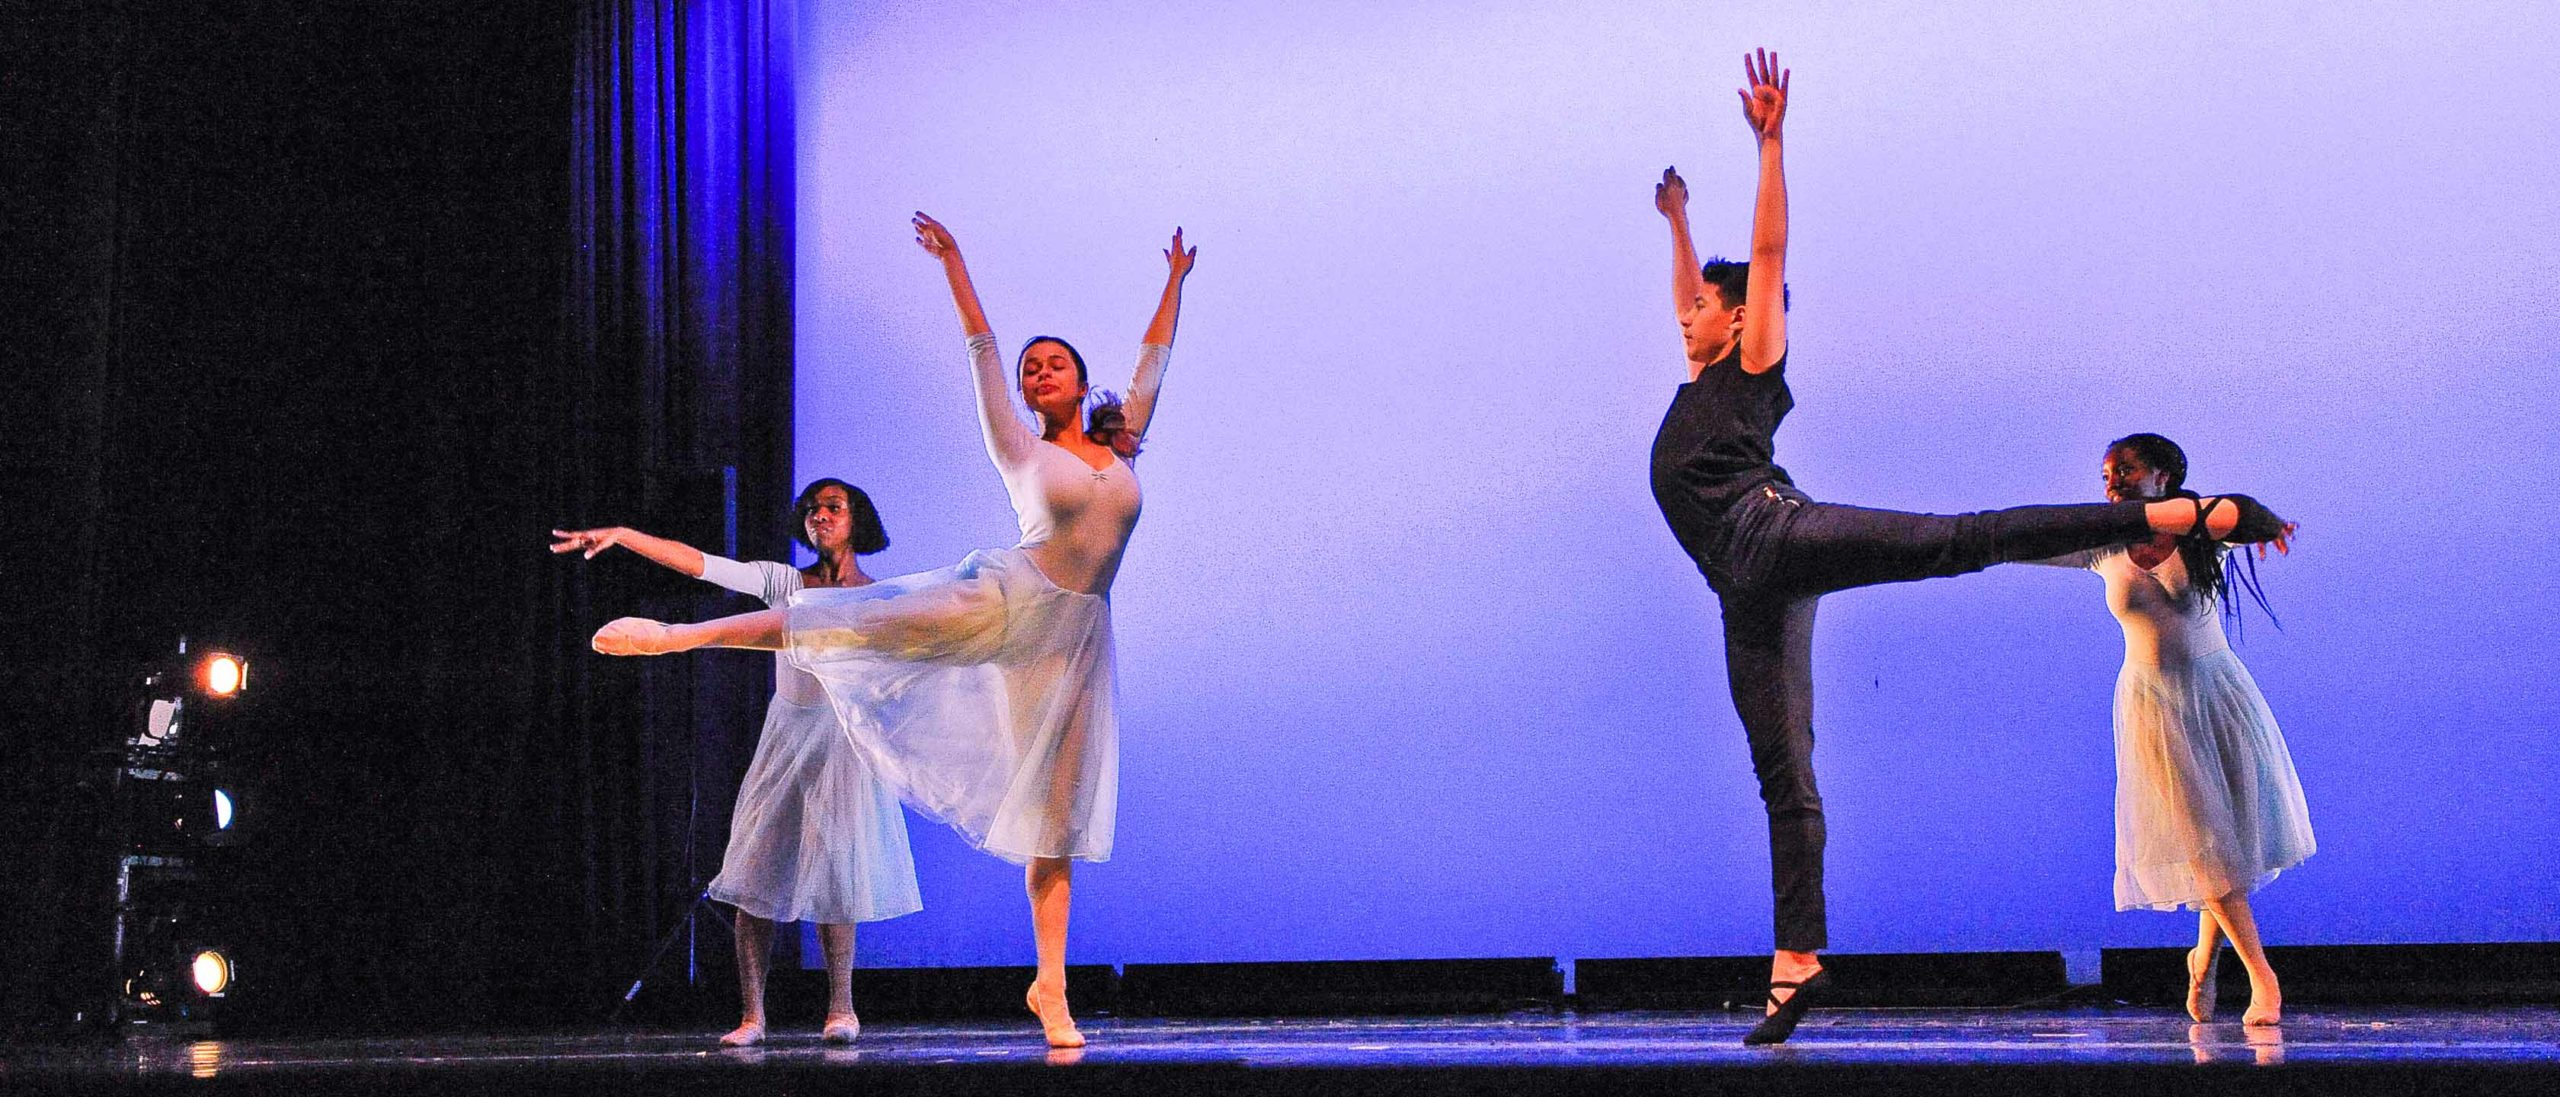 Students performing a ballet on sstage